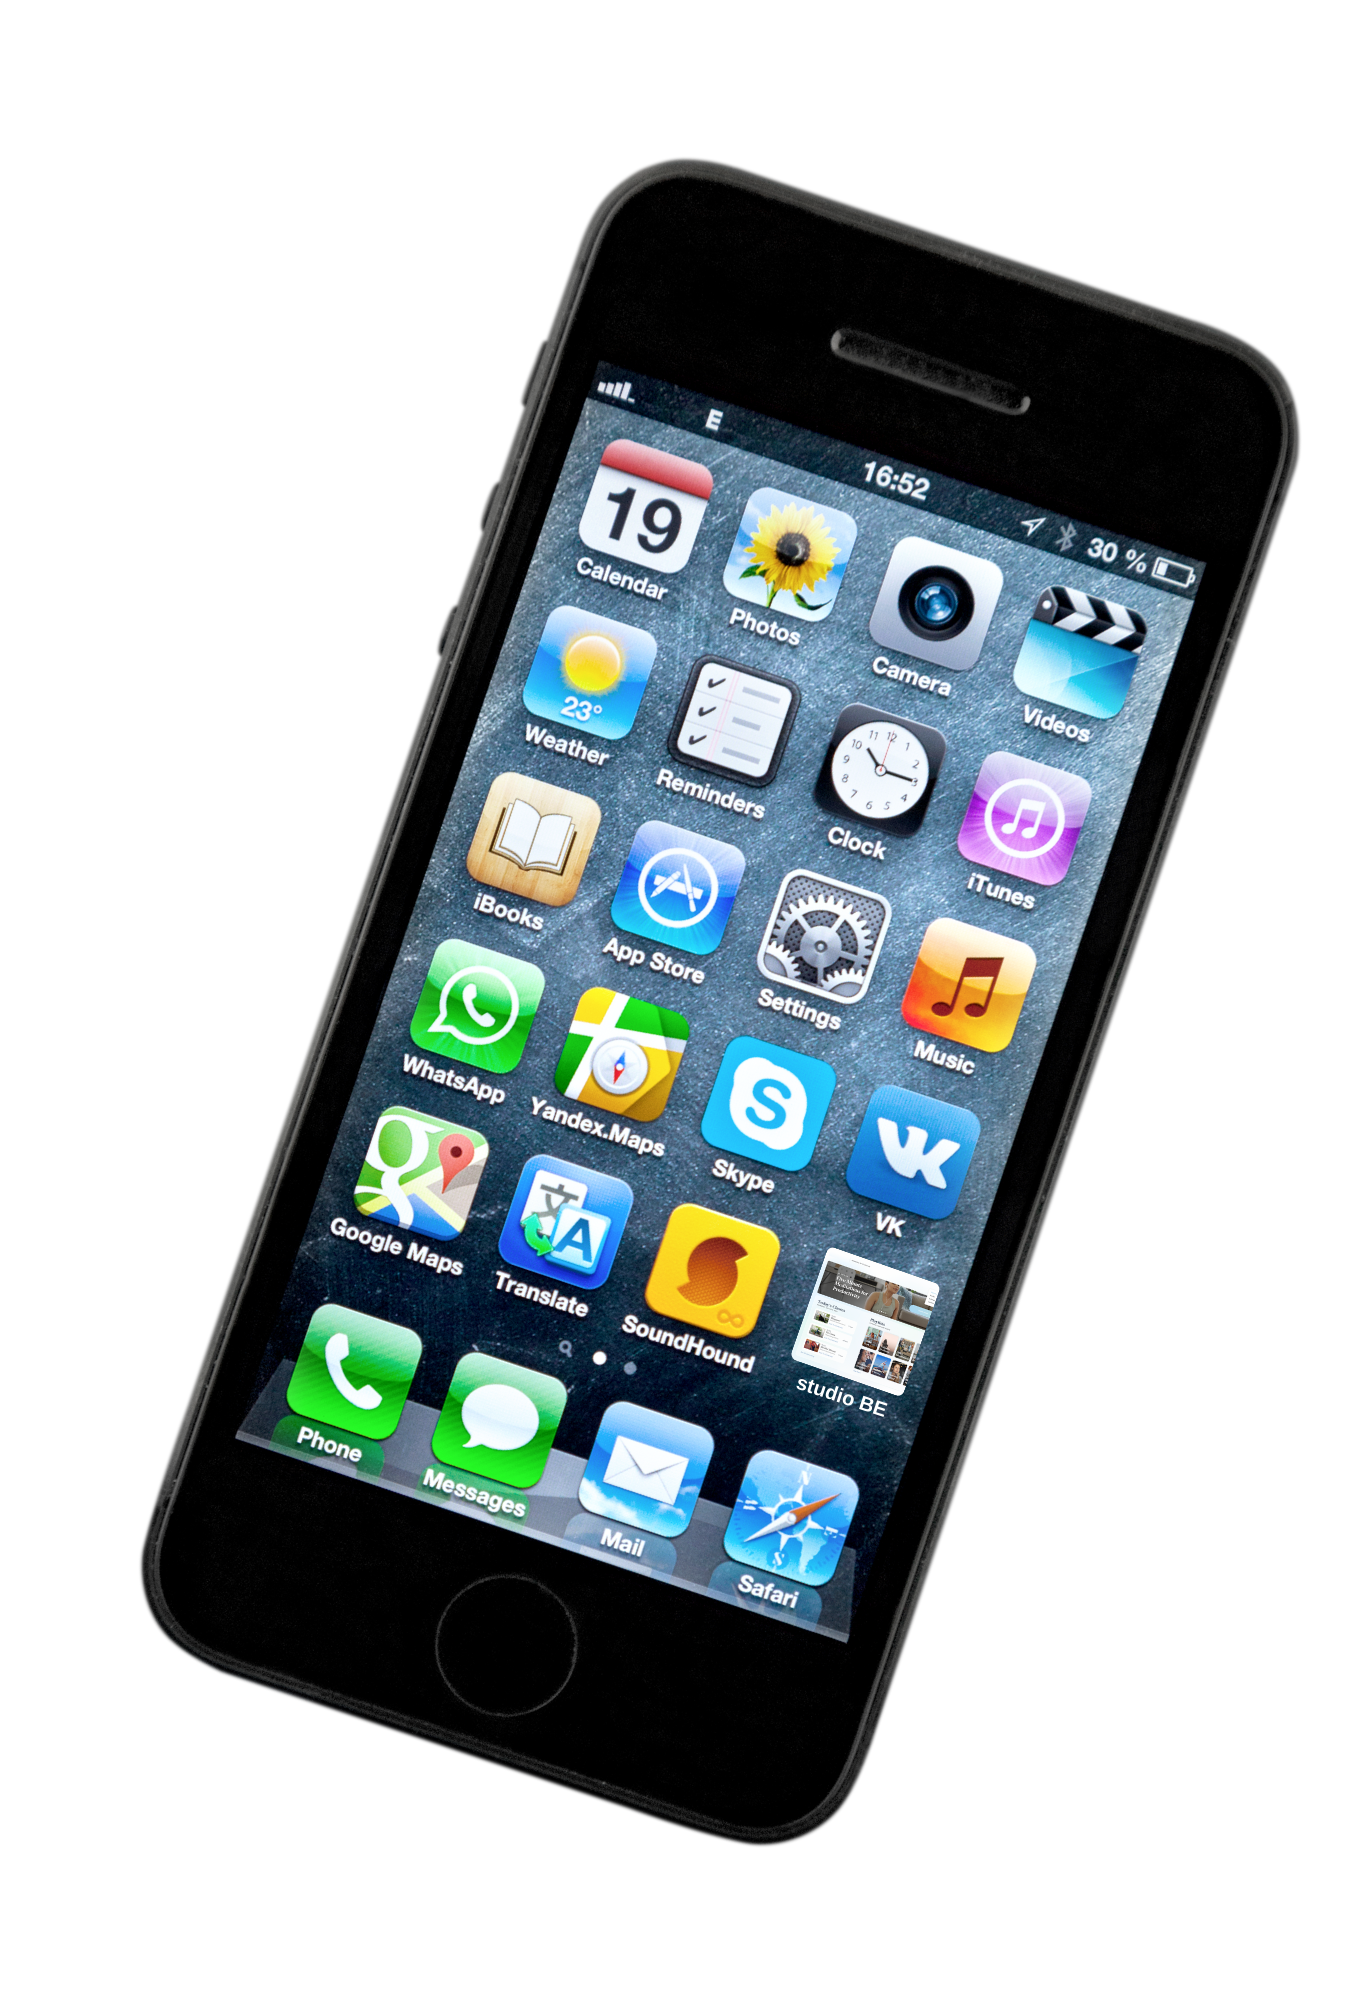 Black iPhone with a gray screen full of apps, including studio BE's website.